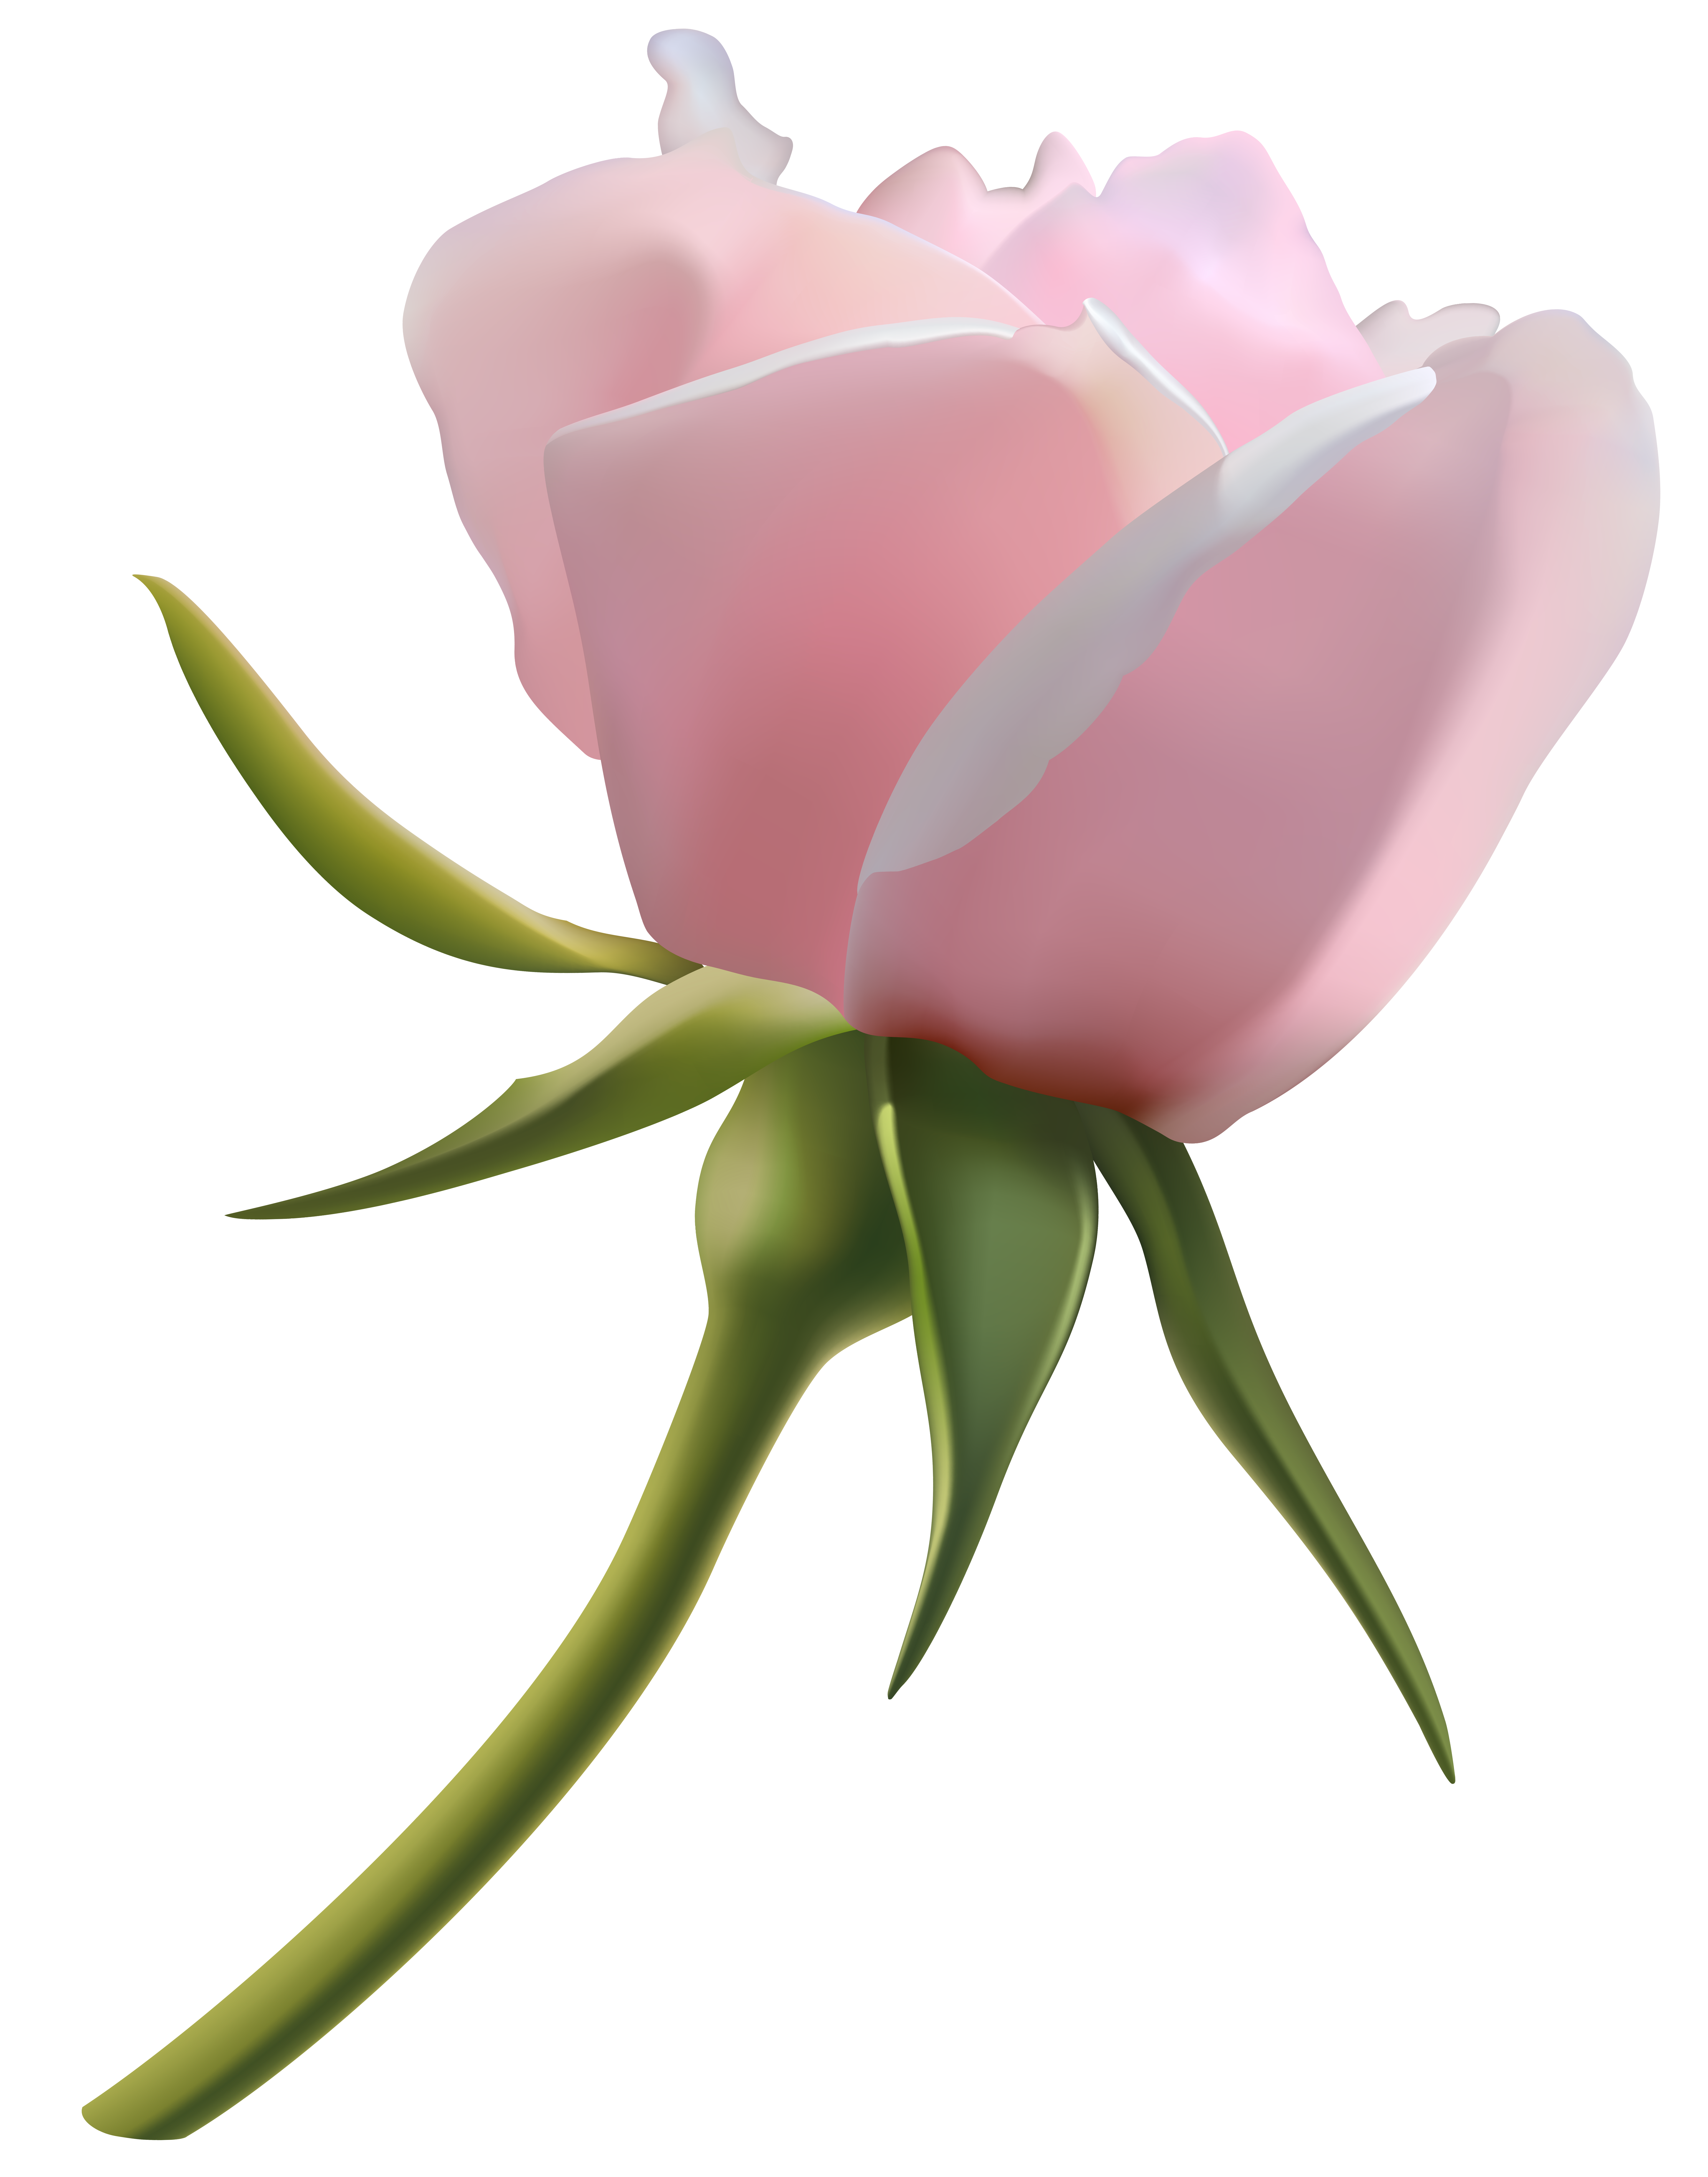 Beautiful pink png image. Clipart roses rose bud